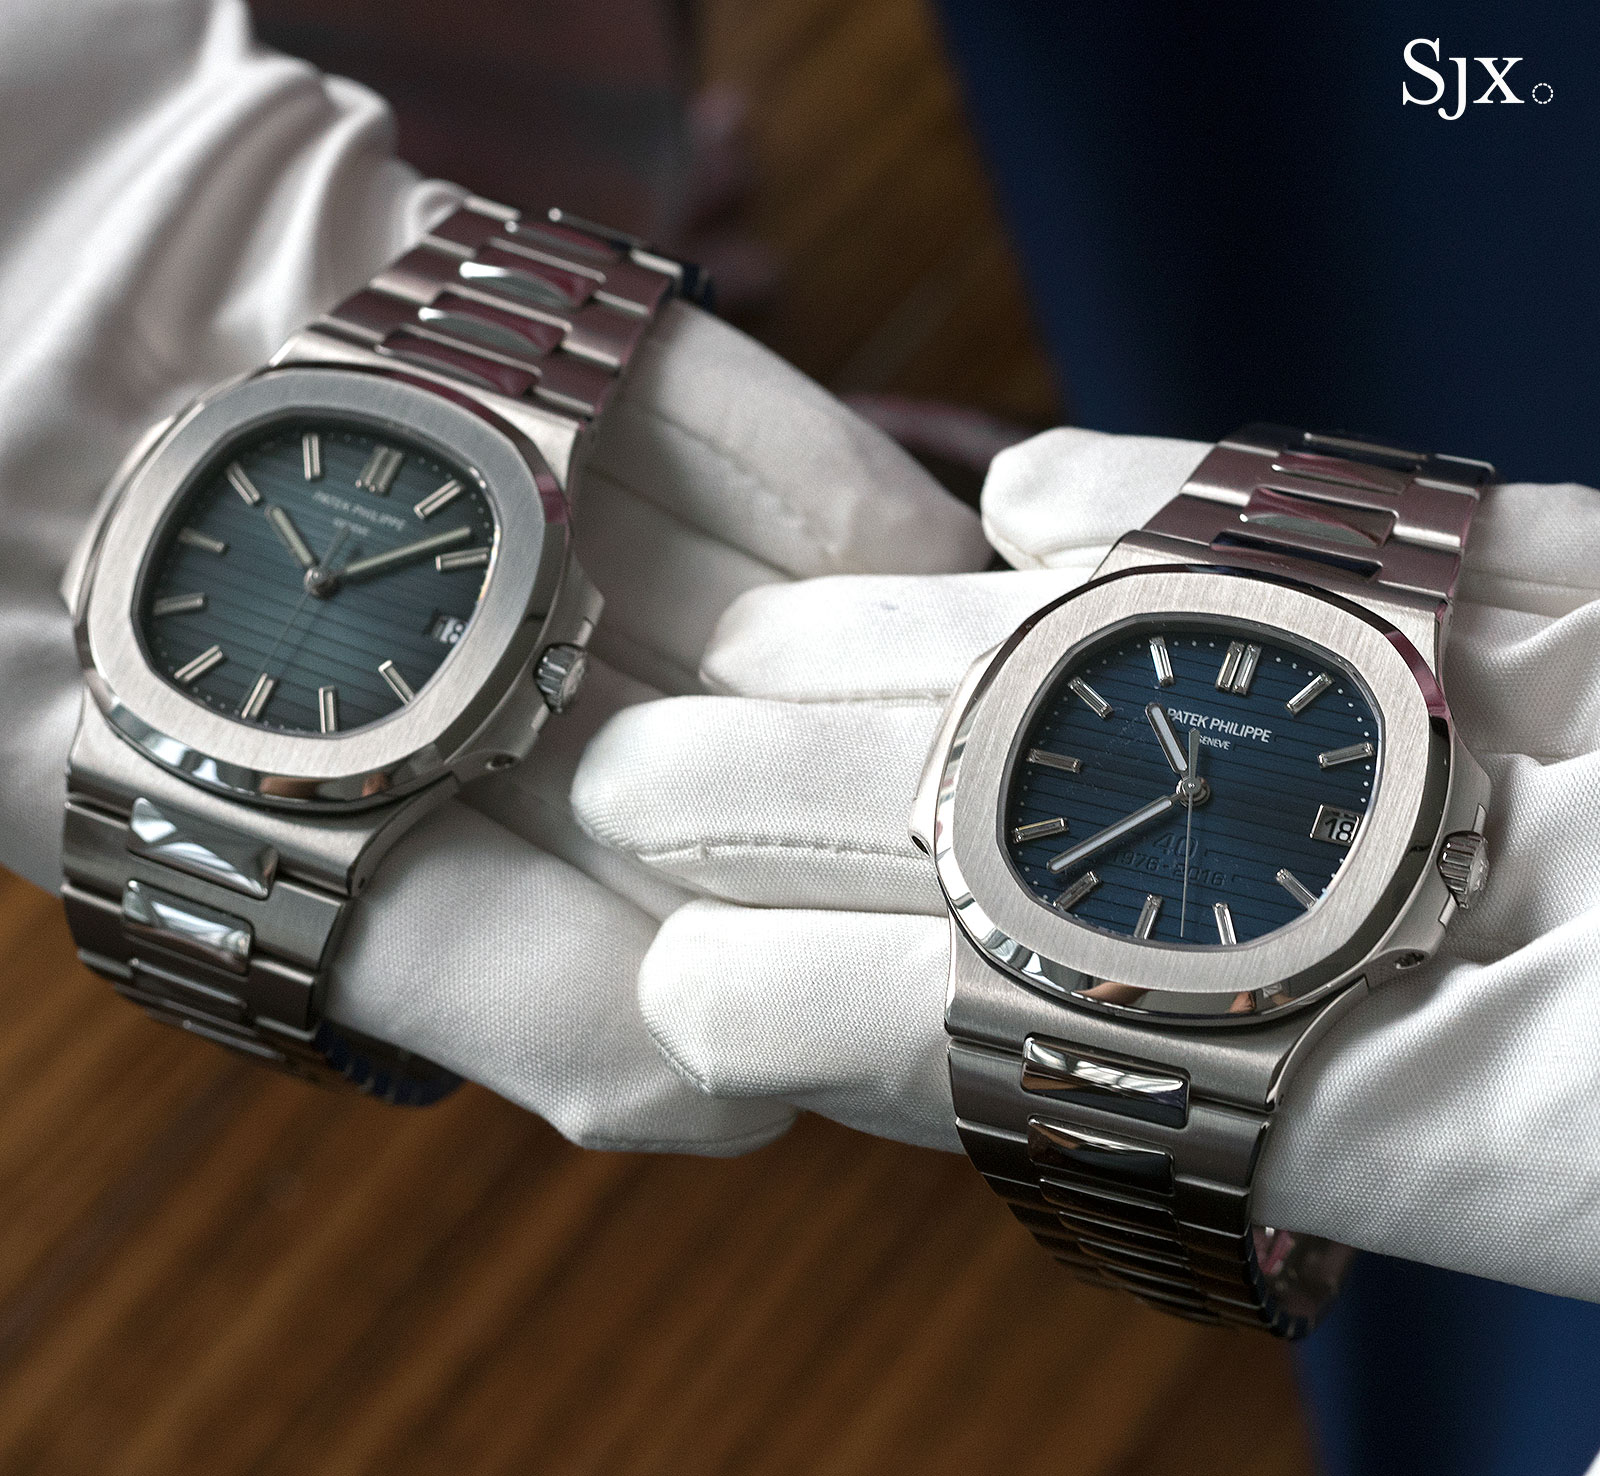 7978f2be140 Up Close with the Patek Philippe Nautilus Replica Watches